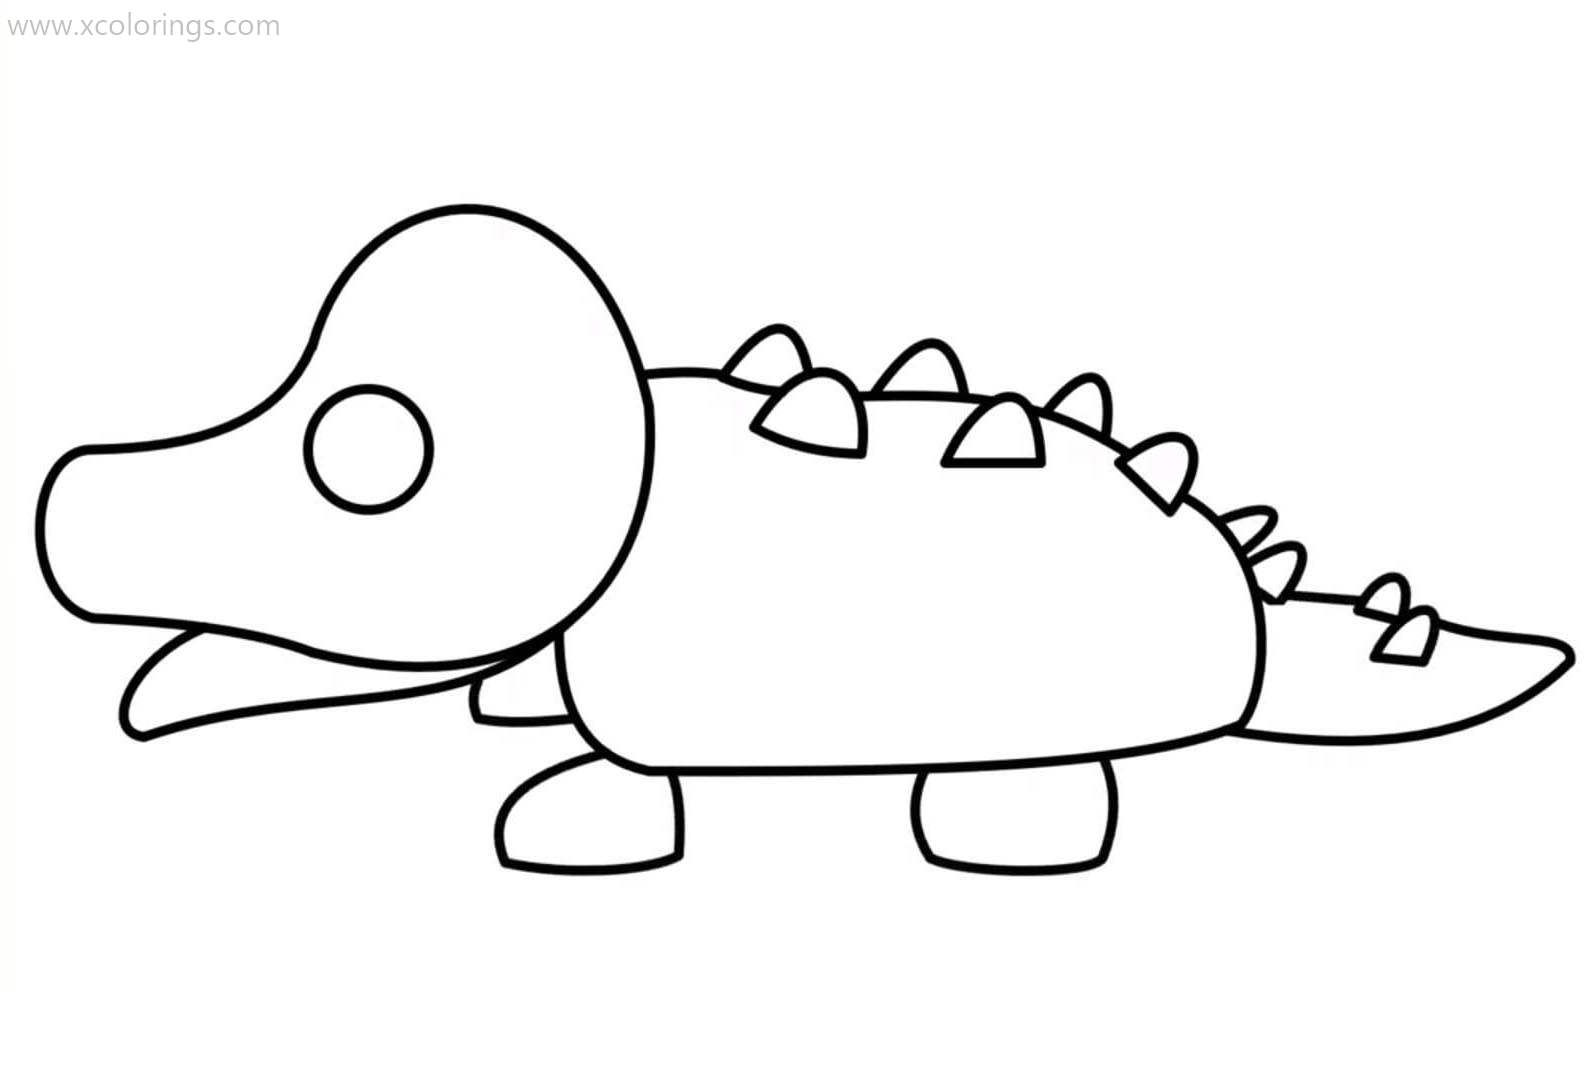 Roblox Adopt Me Coloring Pages Crocodile Pets Drawing Coloring Pages Adoption